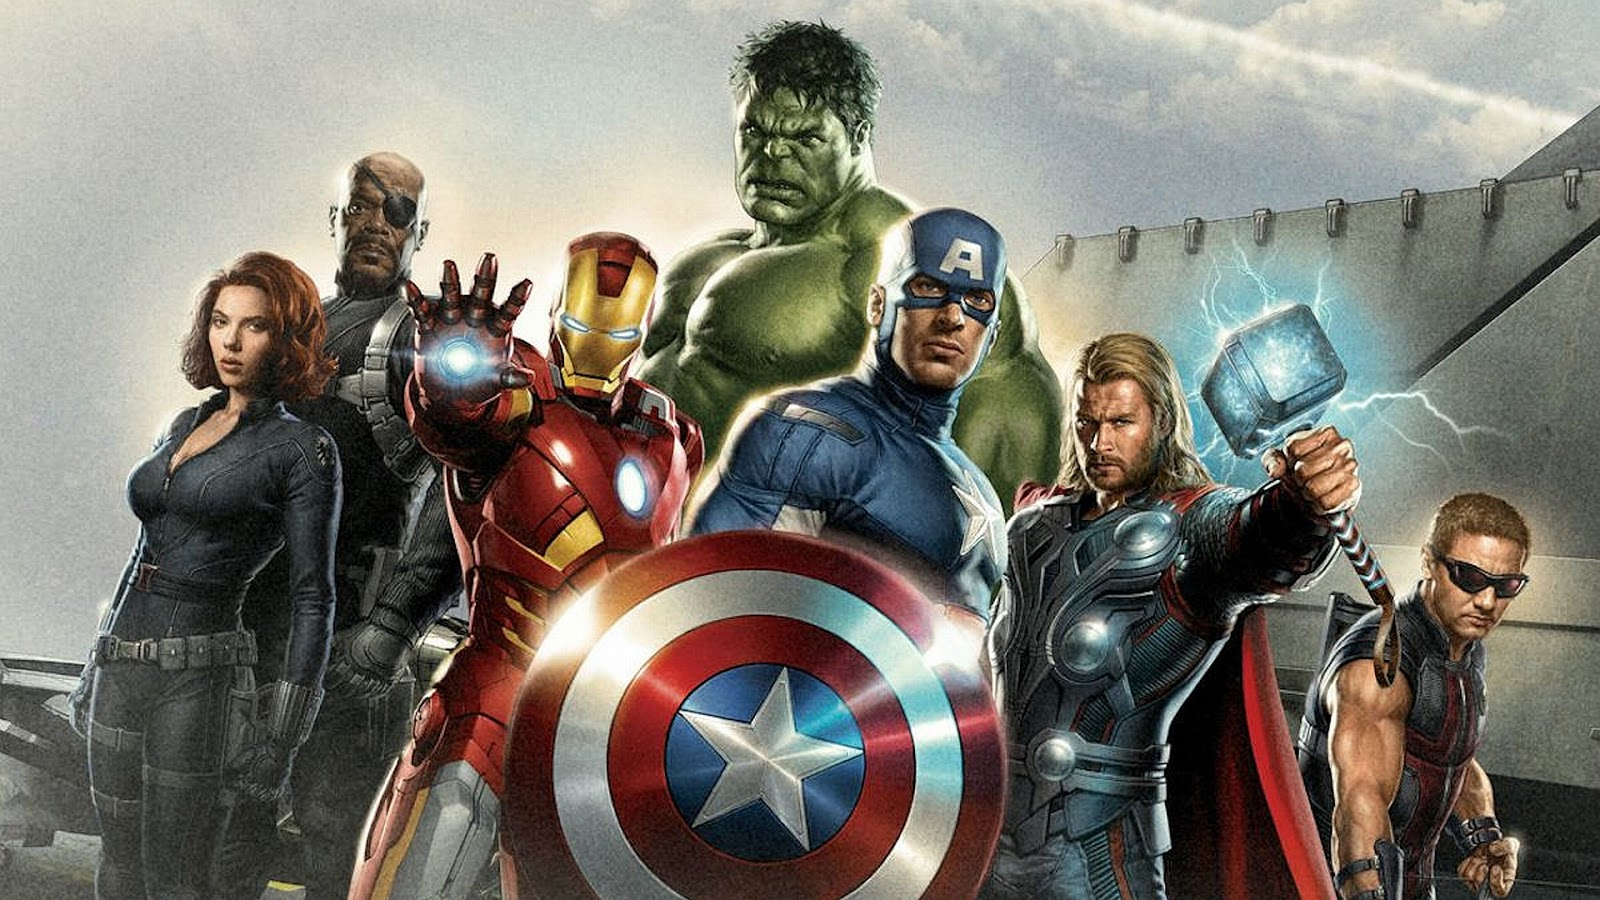 Marvel Comics The Avengers Wallpaper